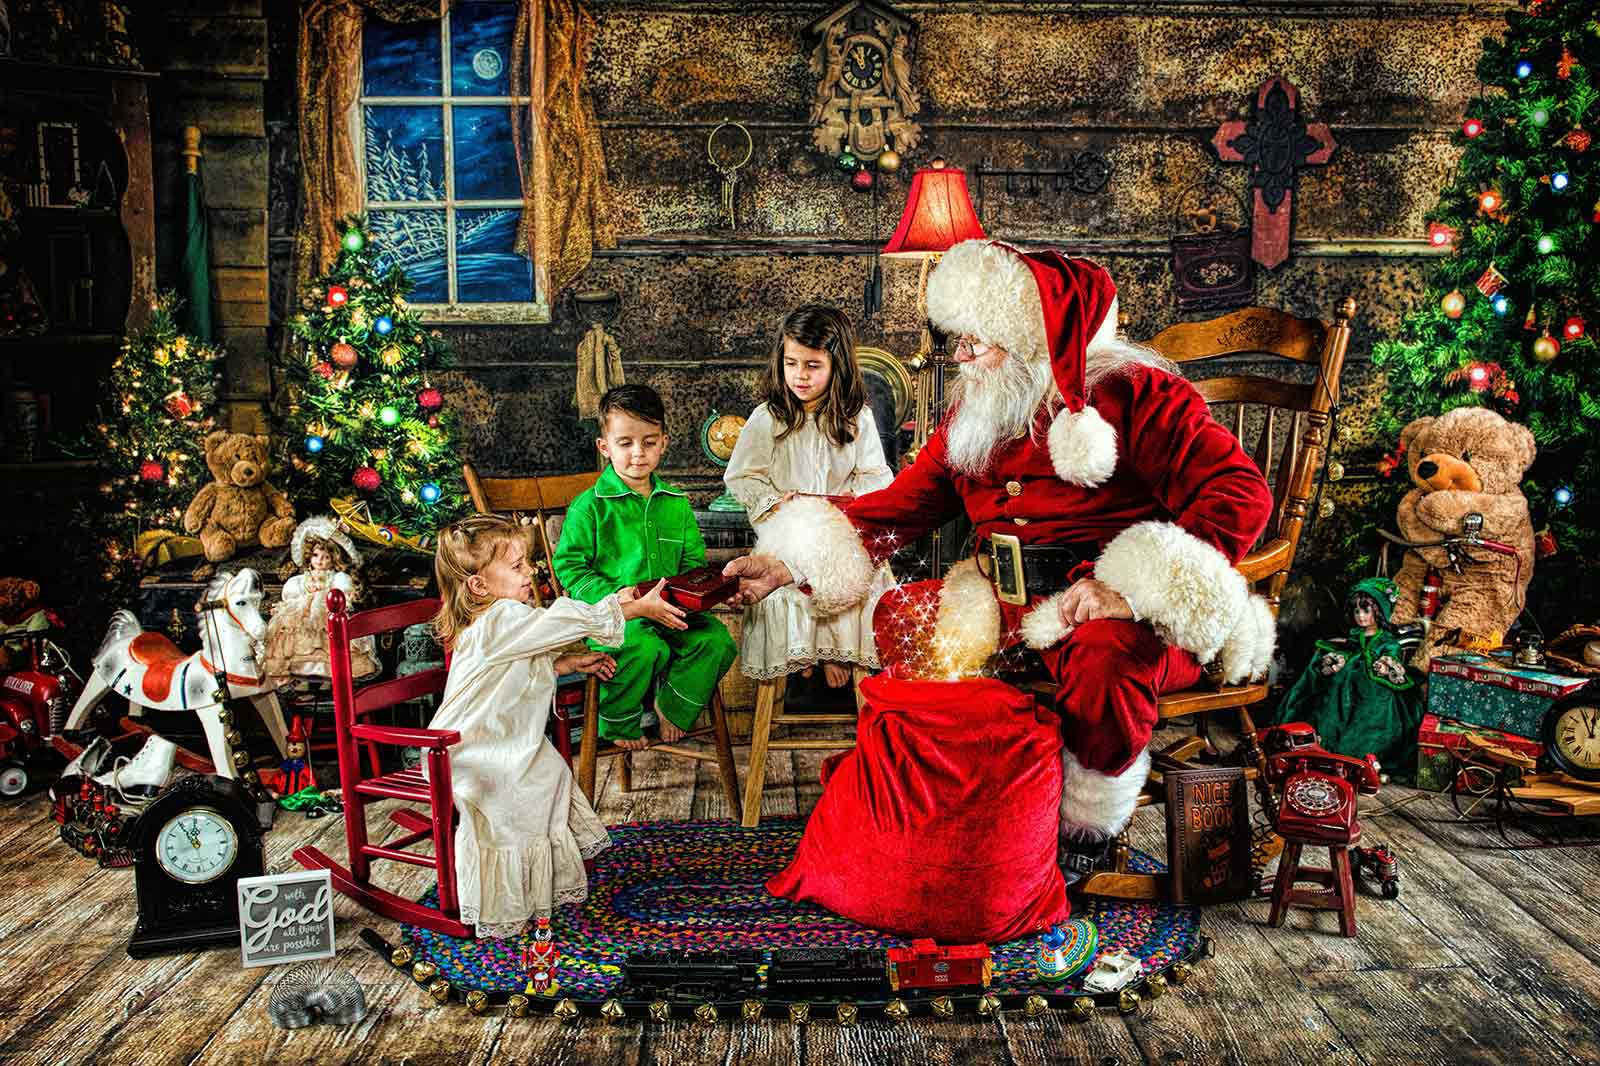 021_Magic-of-Santa-Anna-Thielen-Photography